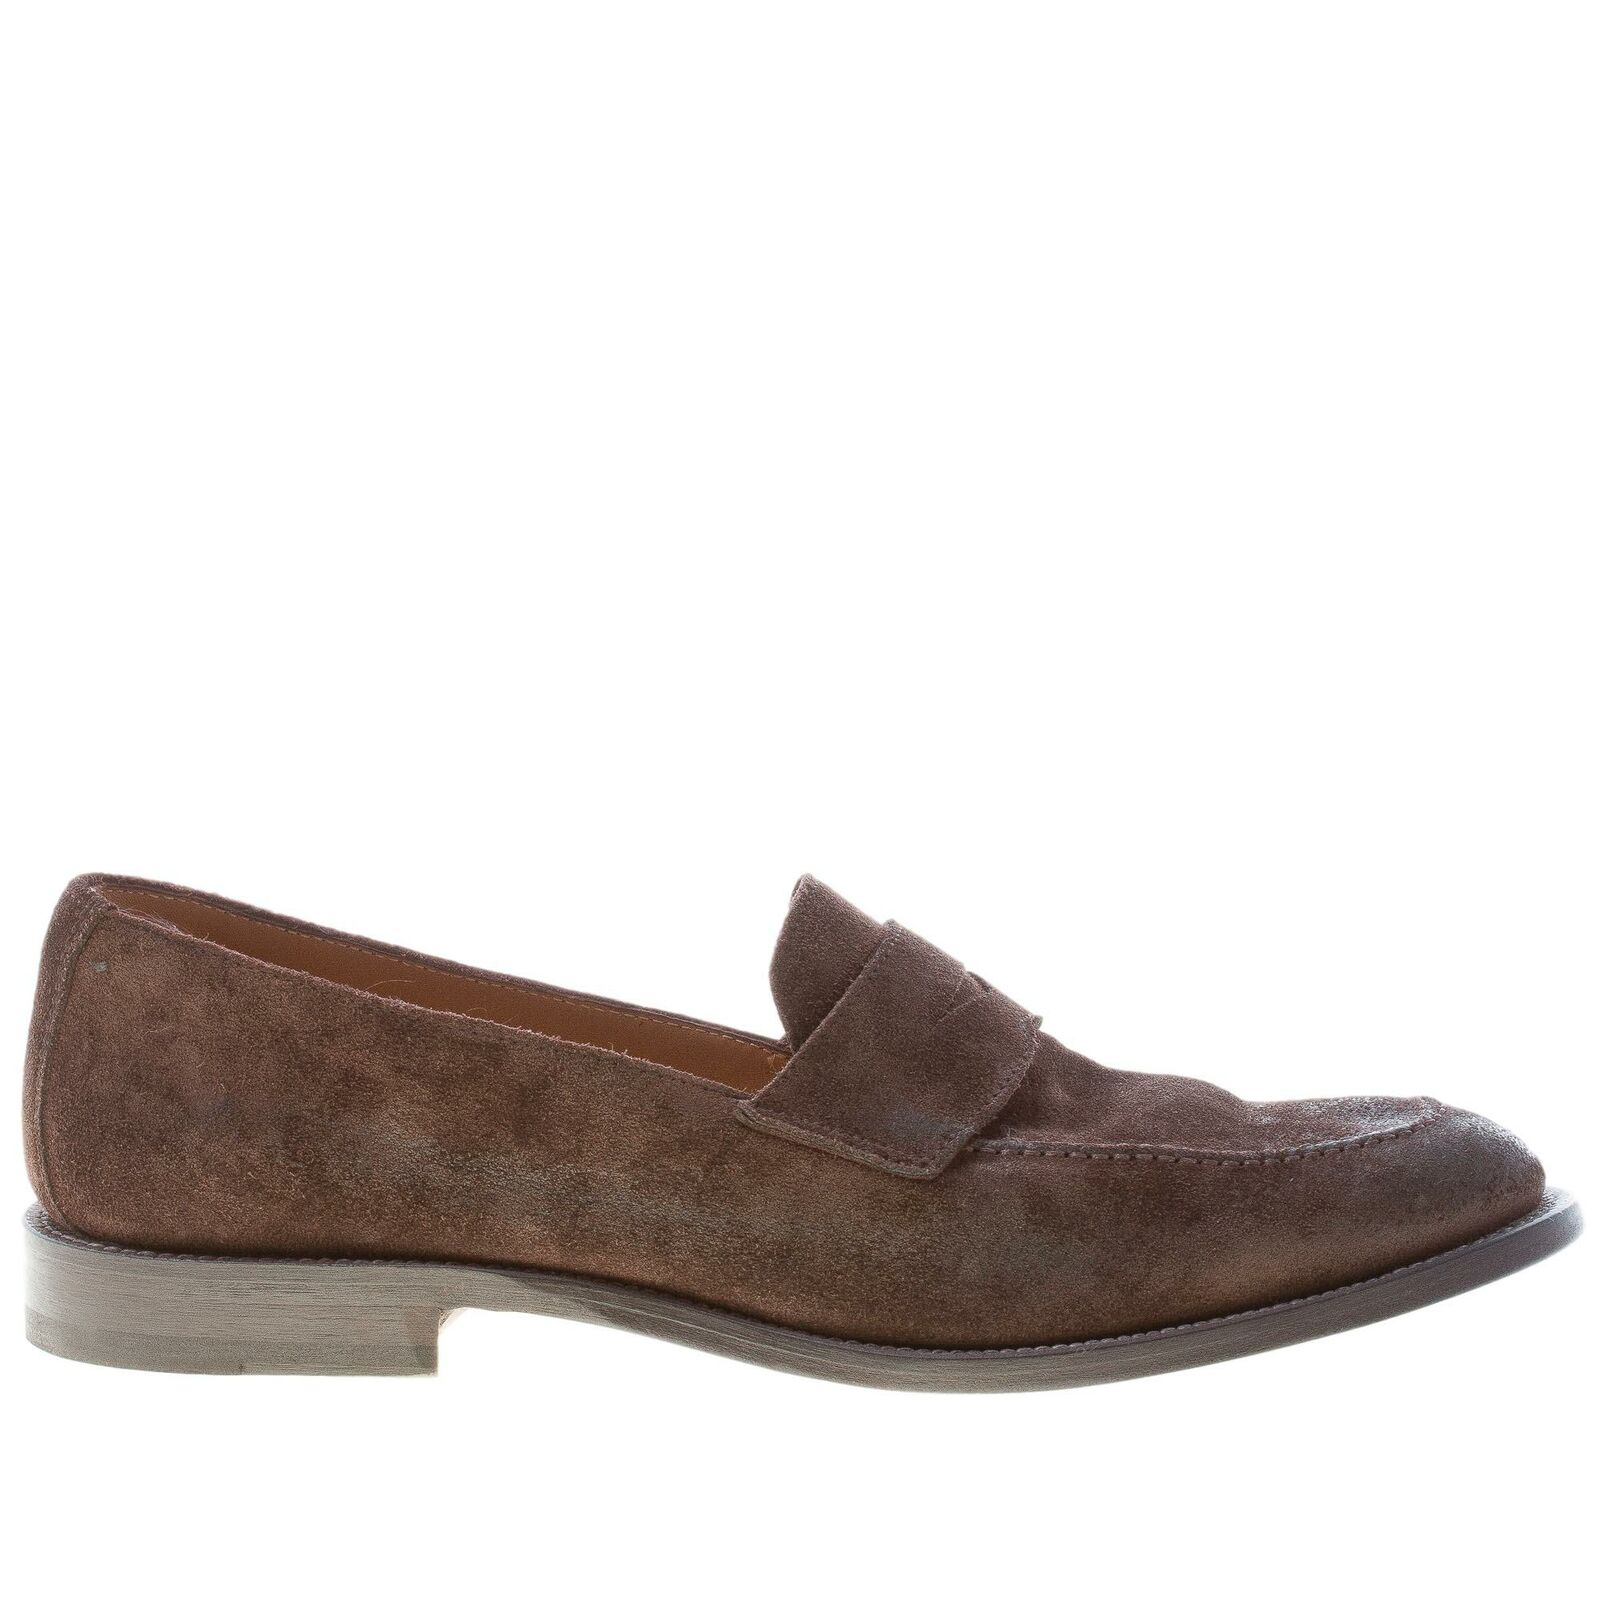 MIGLIORE herren schuhe Antiqued brown veloursleder penny mokassins made in in in  facac0